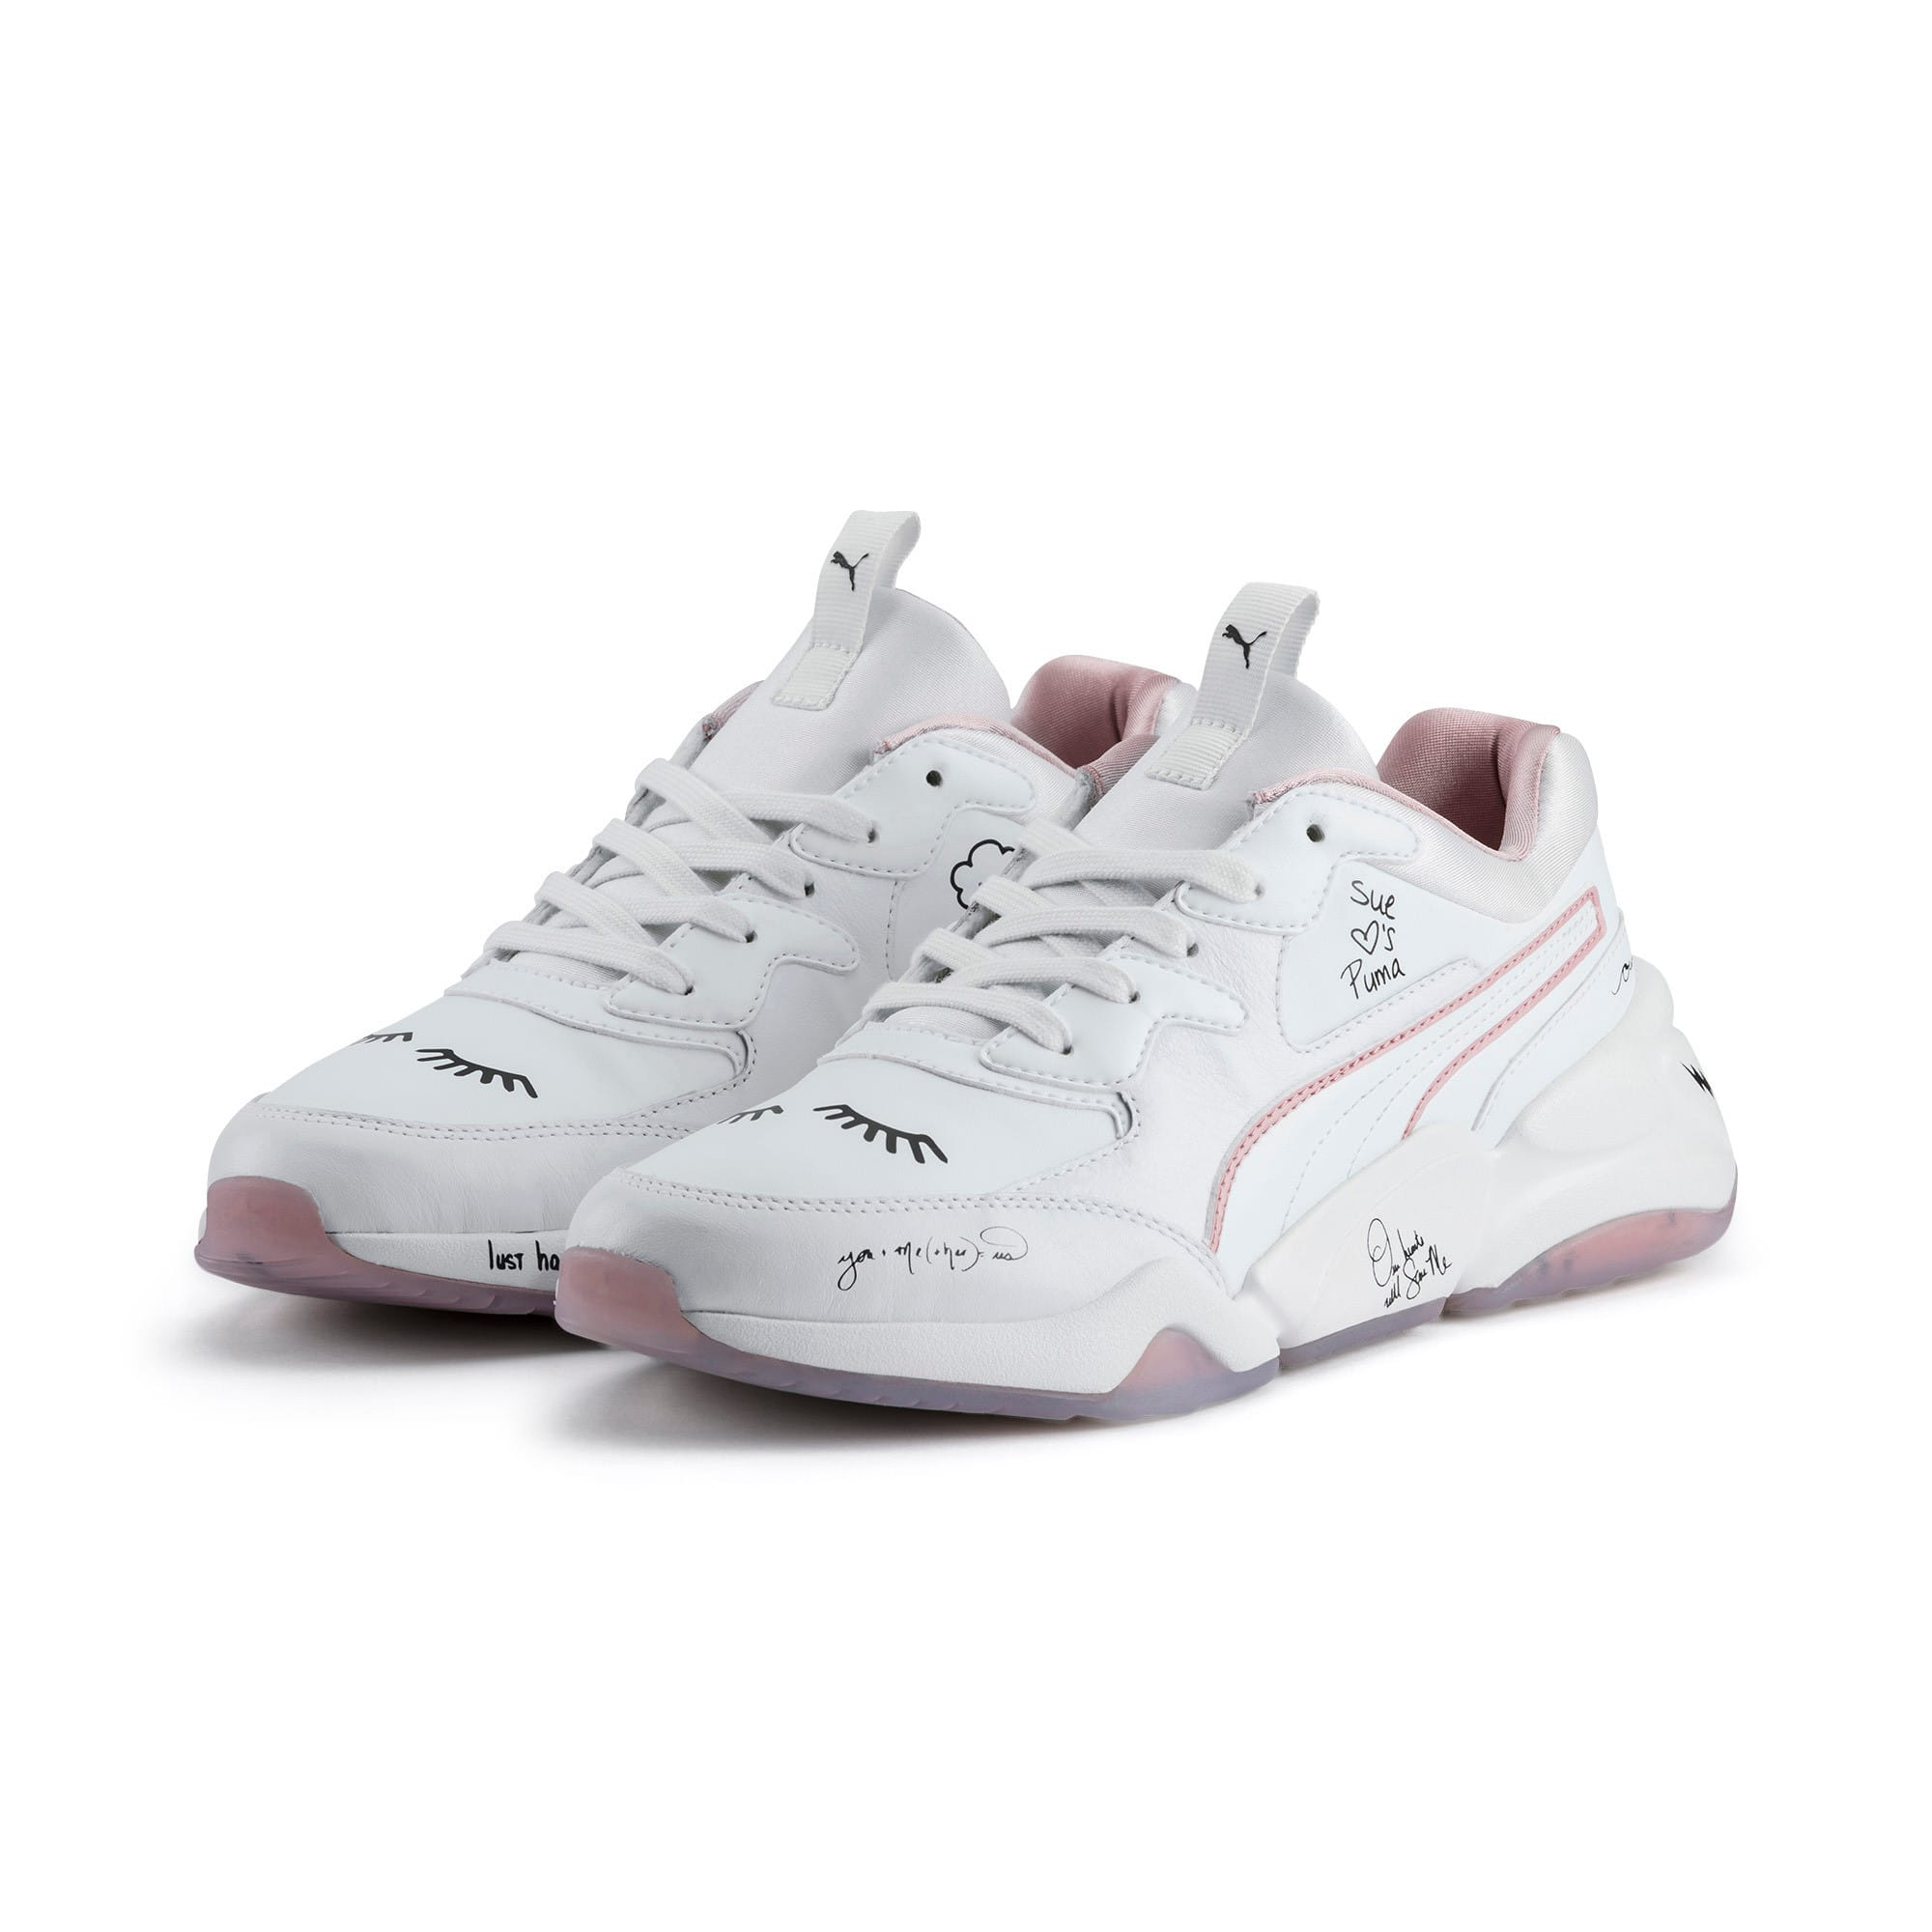 Thumbnail 2 of PUMA x SUE TSAI Nova Women's Trainers, Bright White-Bright White, medium